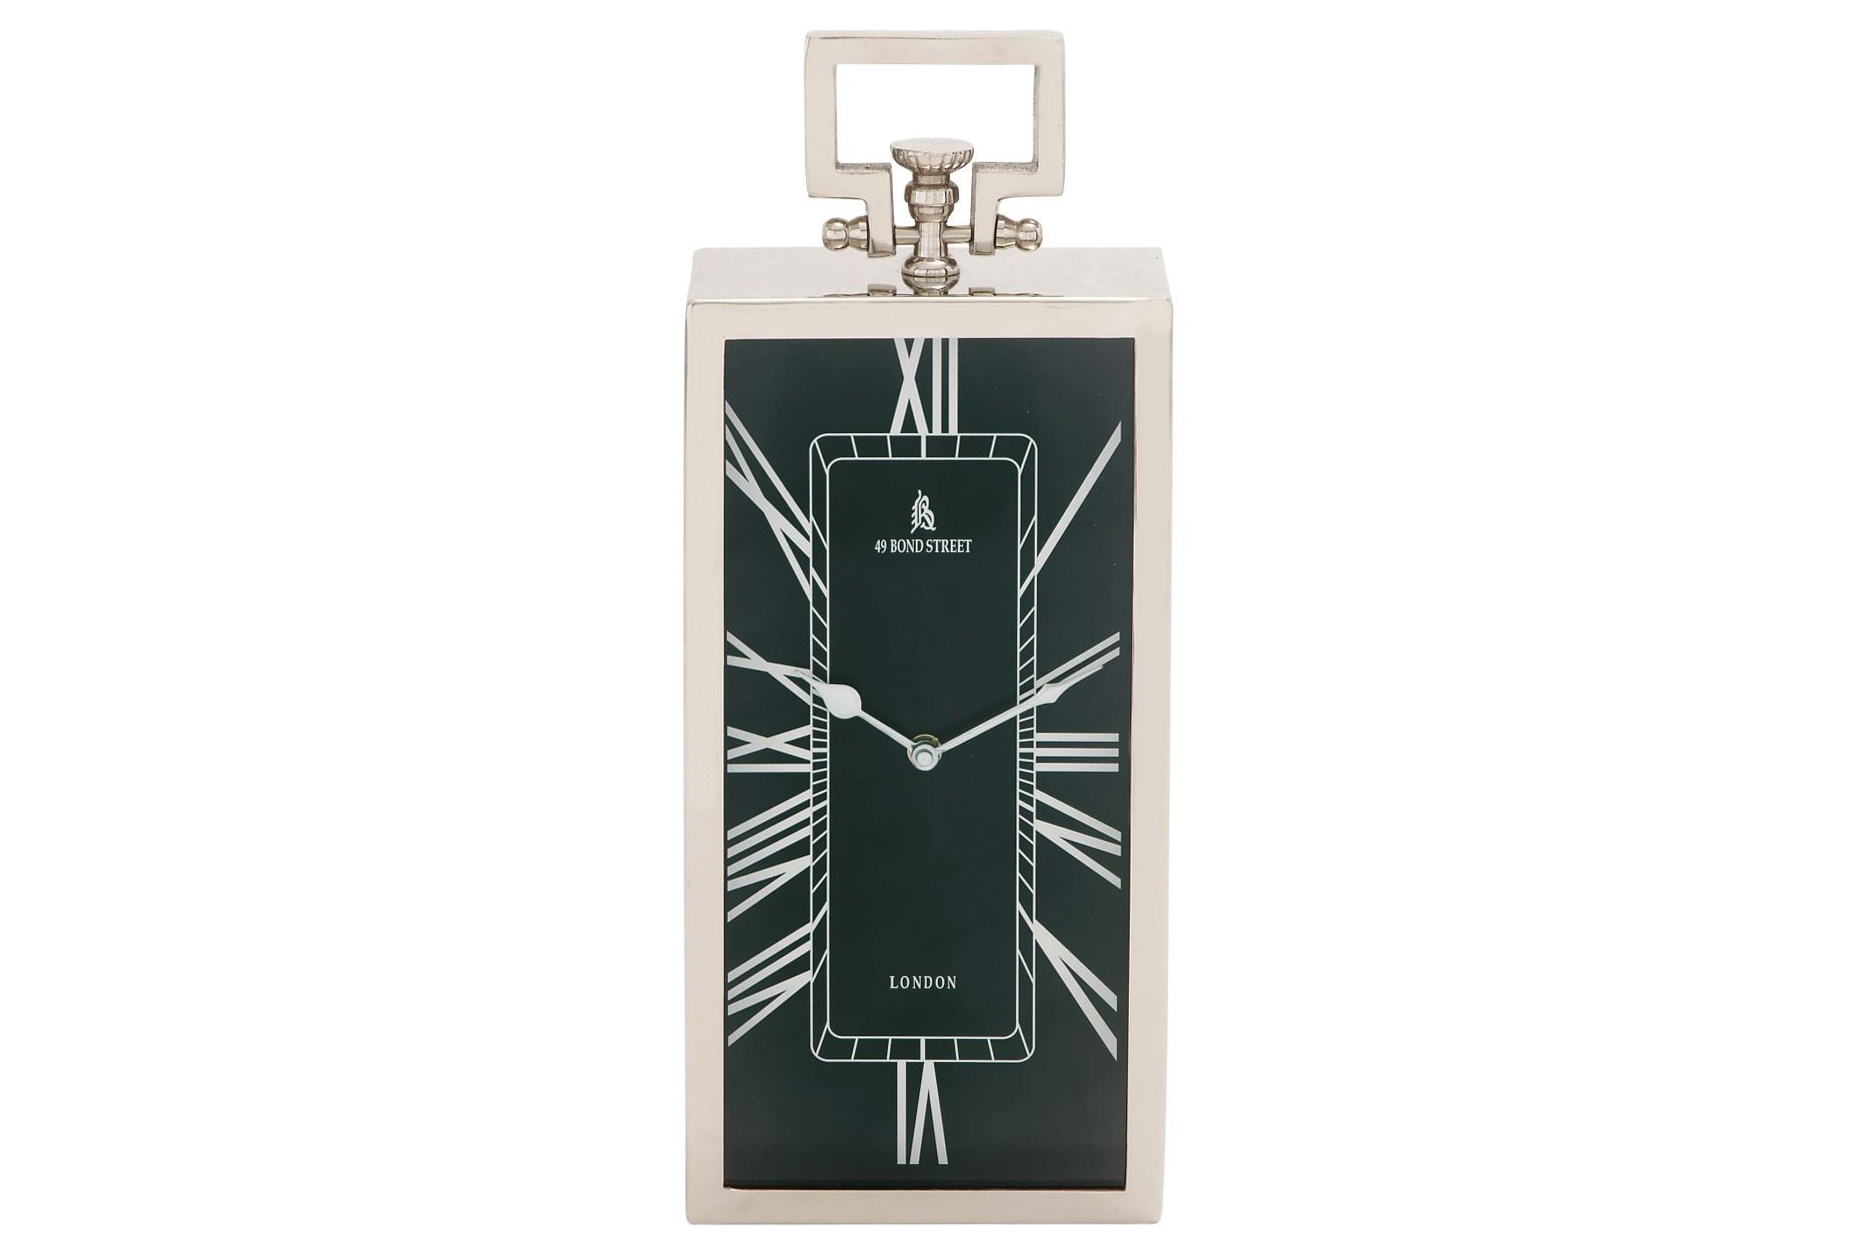 16 Inch Tall Metal Table Clock (Qty: 1) Has Been Successfully Added To Your  Cart.